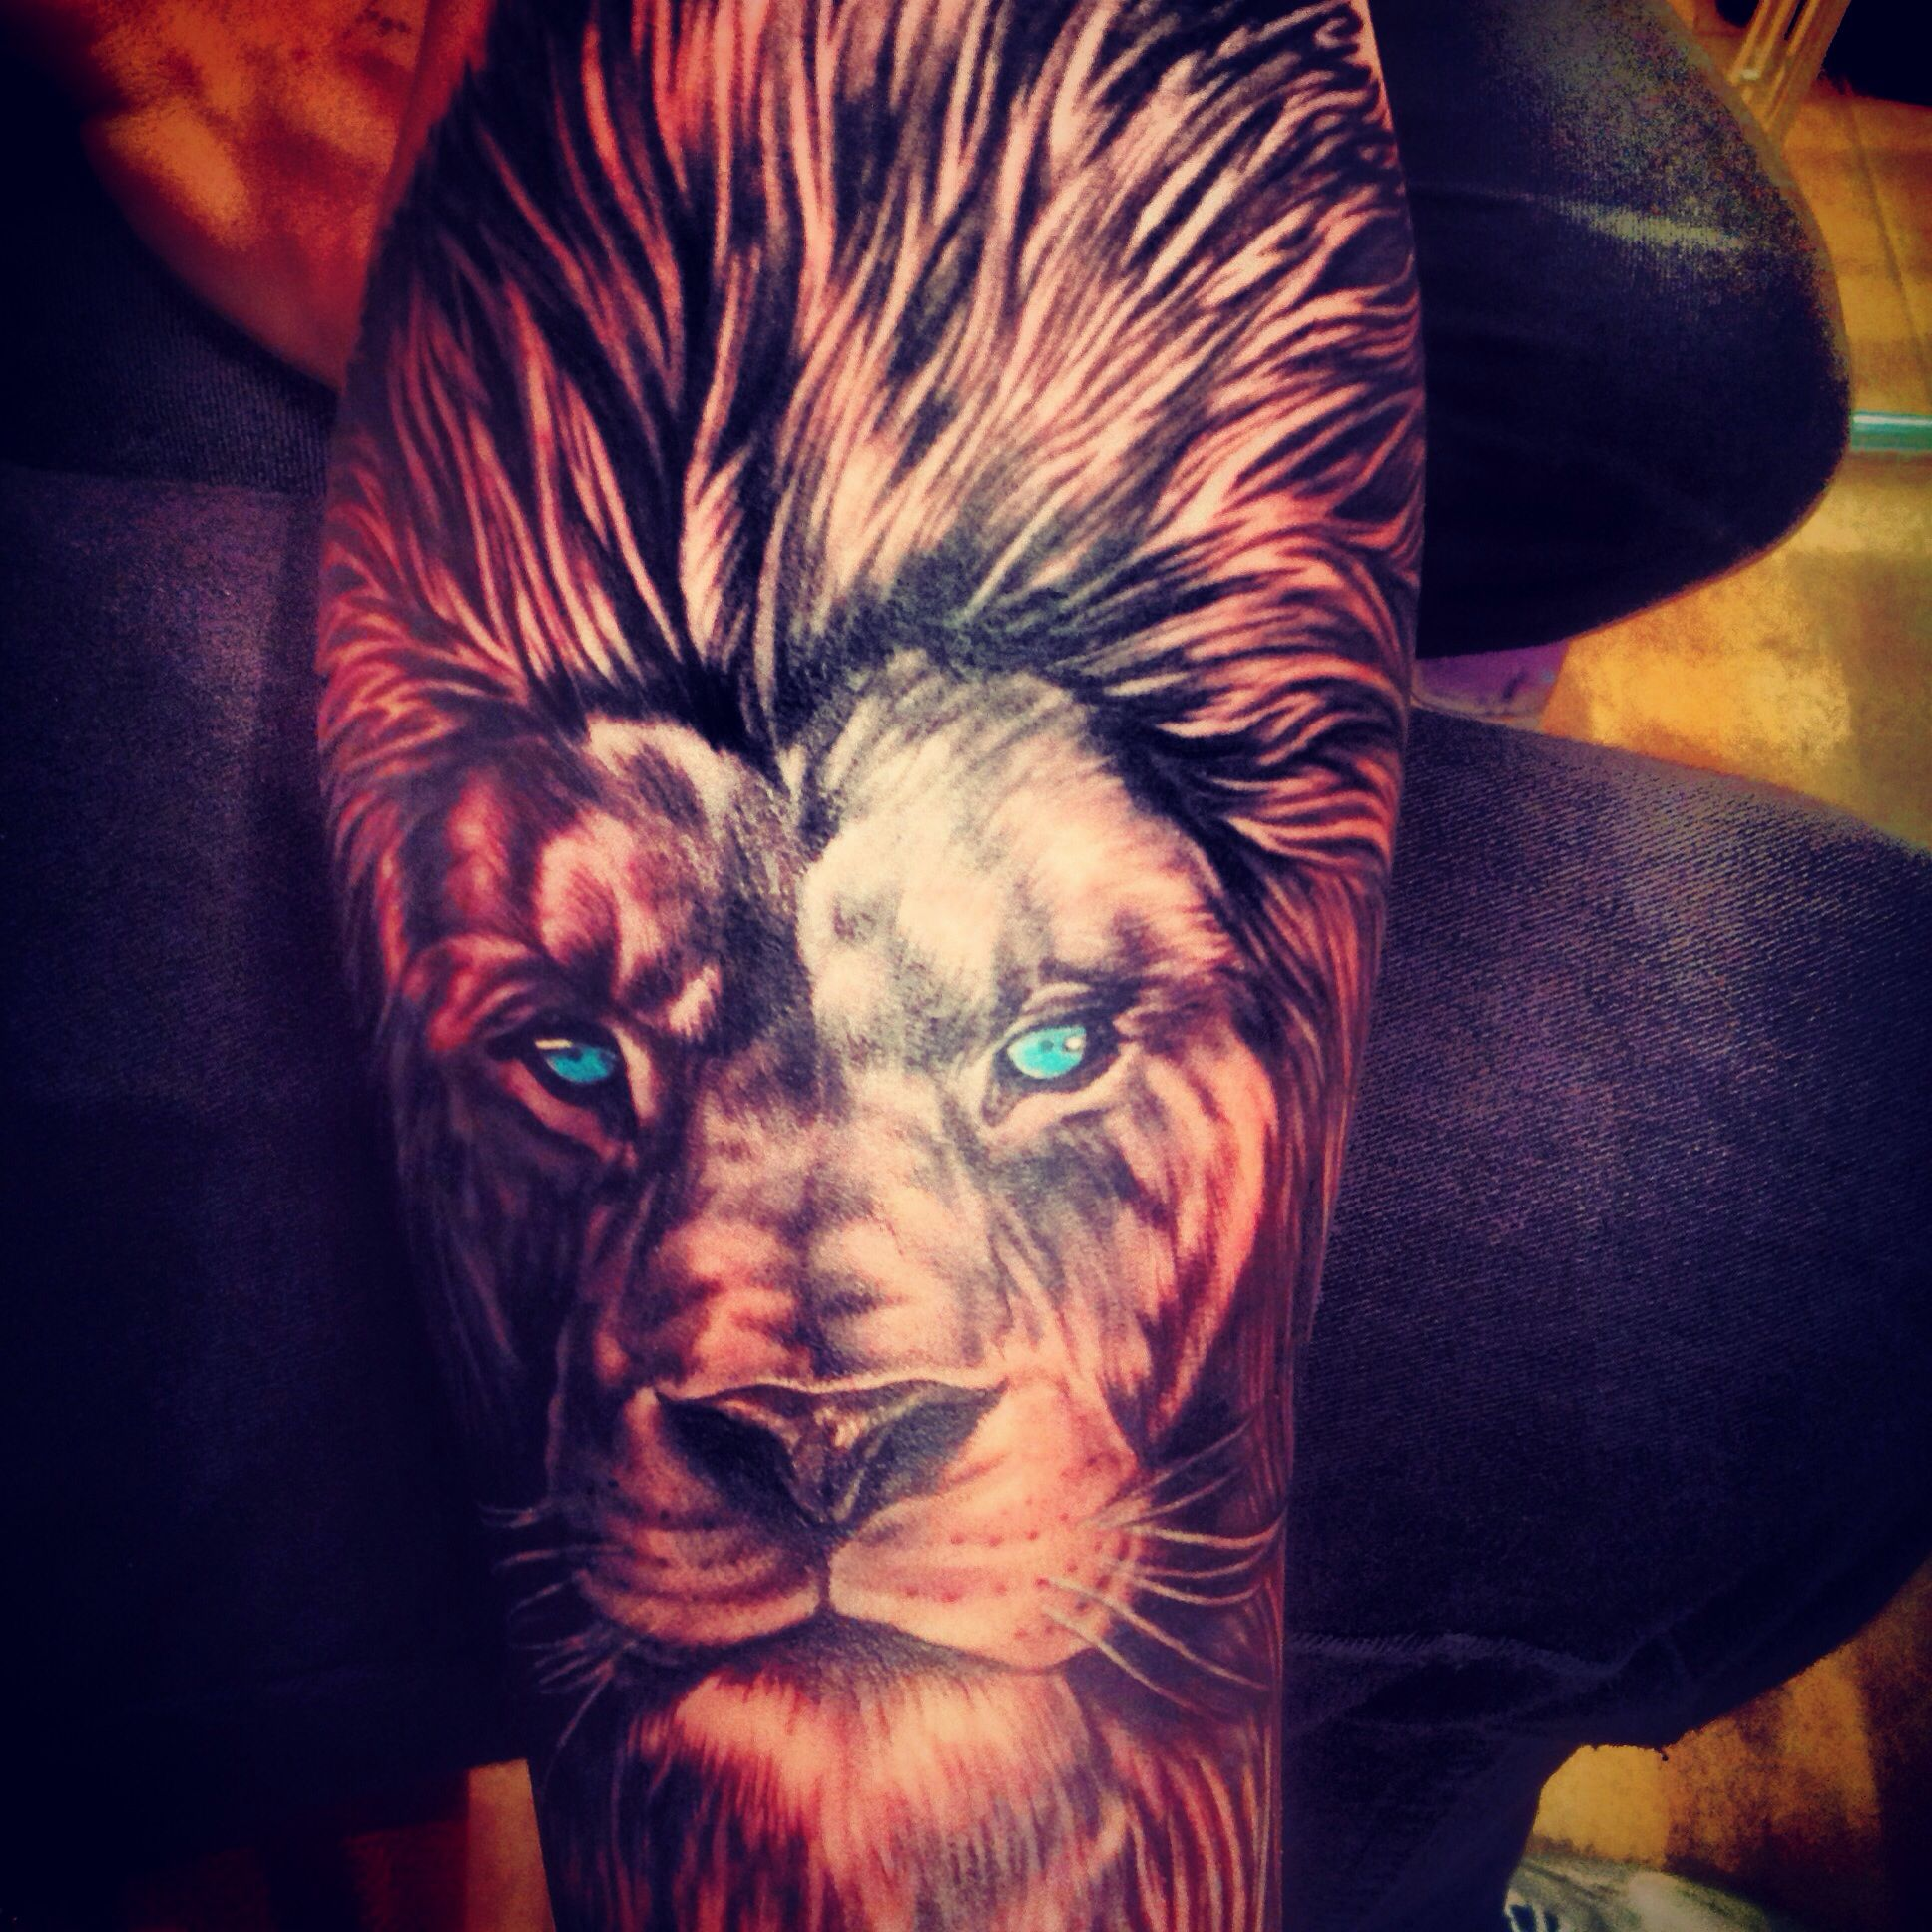 150 realistic lion tattoos and meanings 2017 collection - Lion Tattoo Males Arm Amazing Art Men Are Hotter With Tattoos Definitely